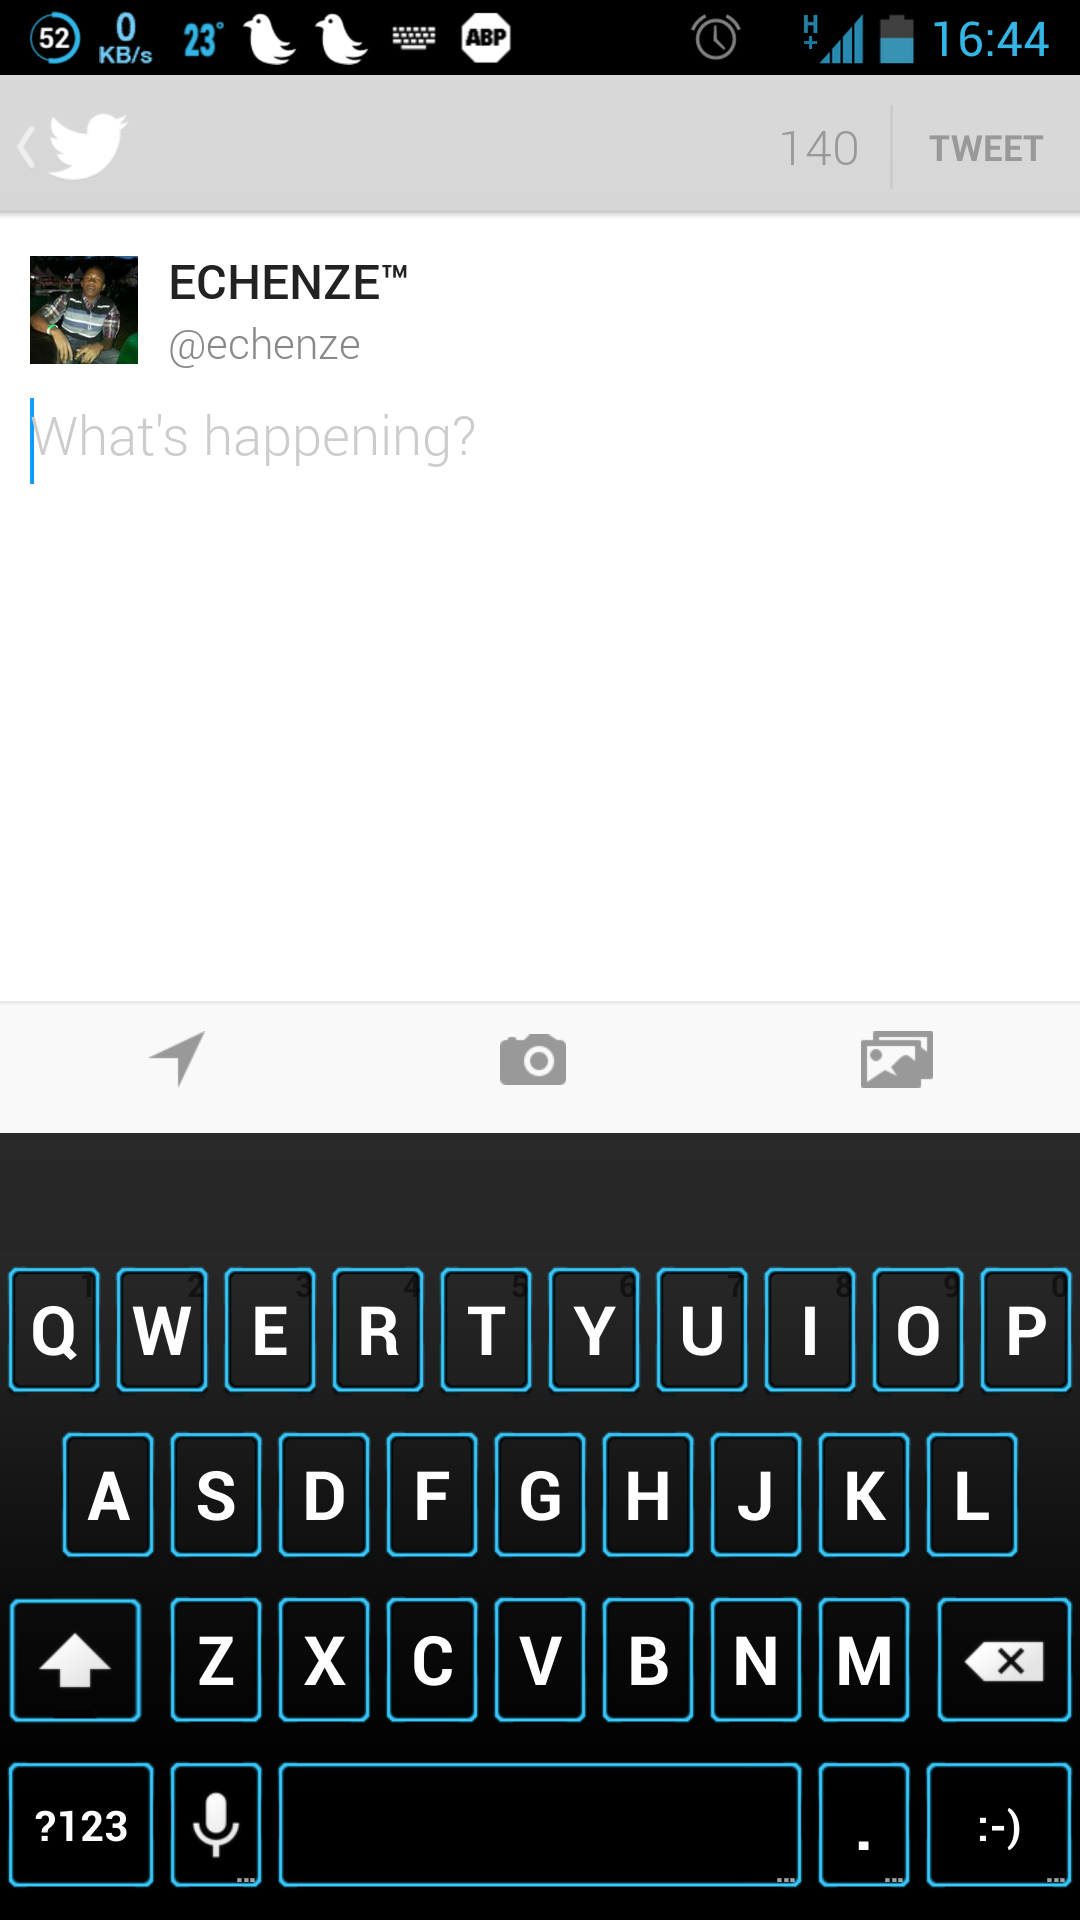 Twitter / echenze: Google Keyboard http://t.co/qUwOS1vGU3